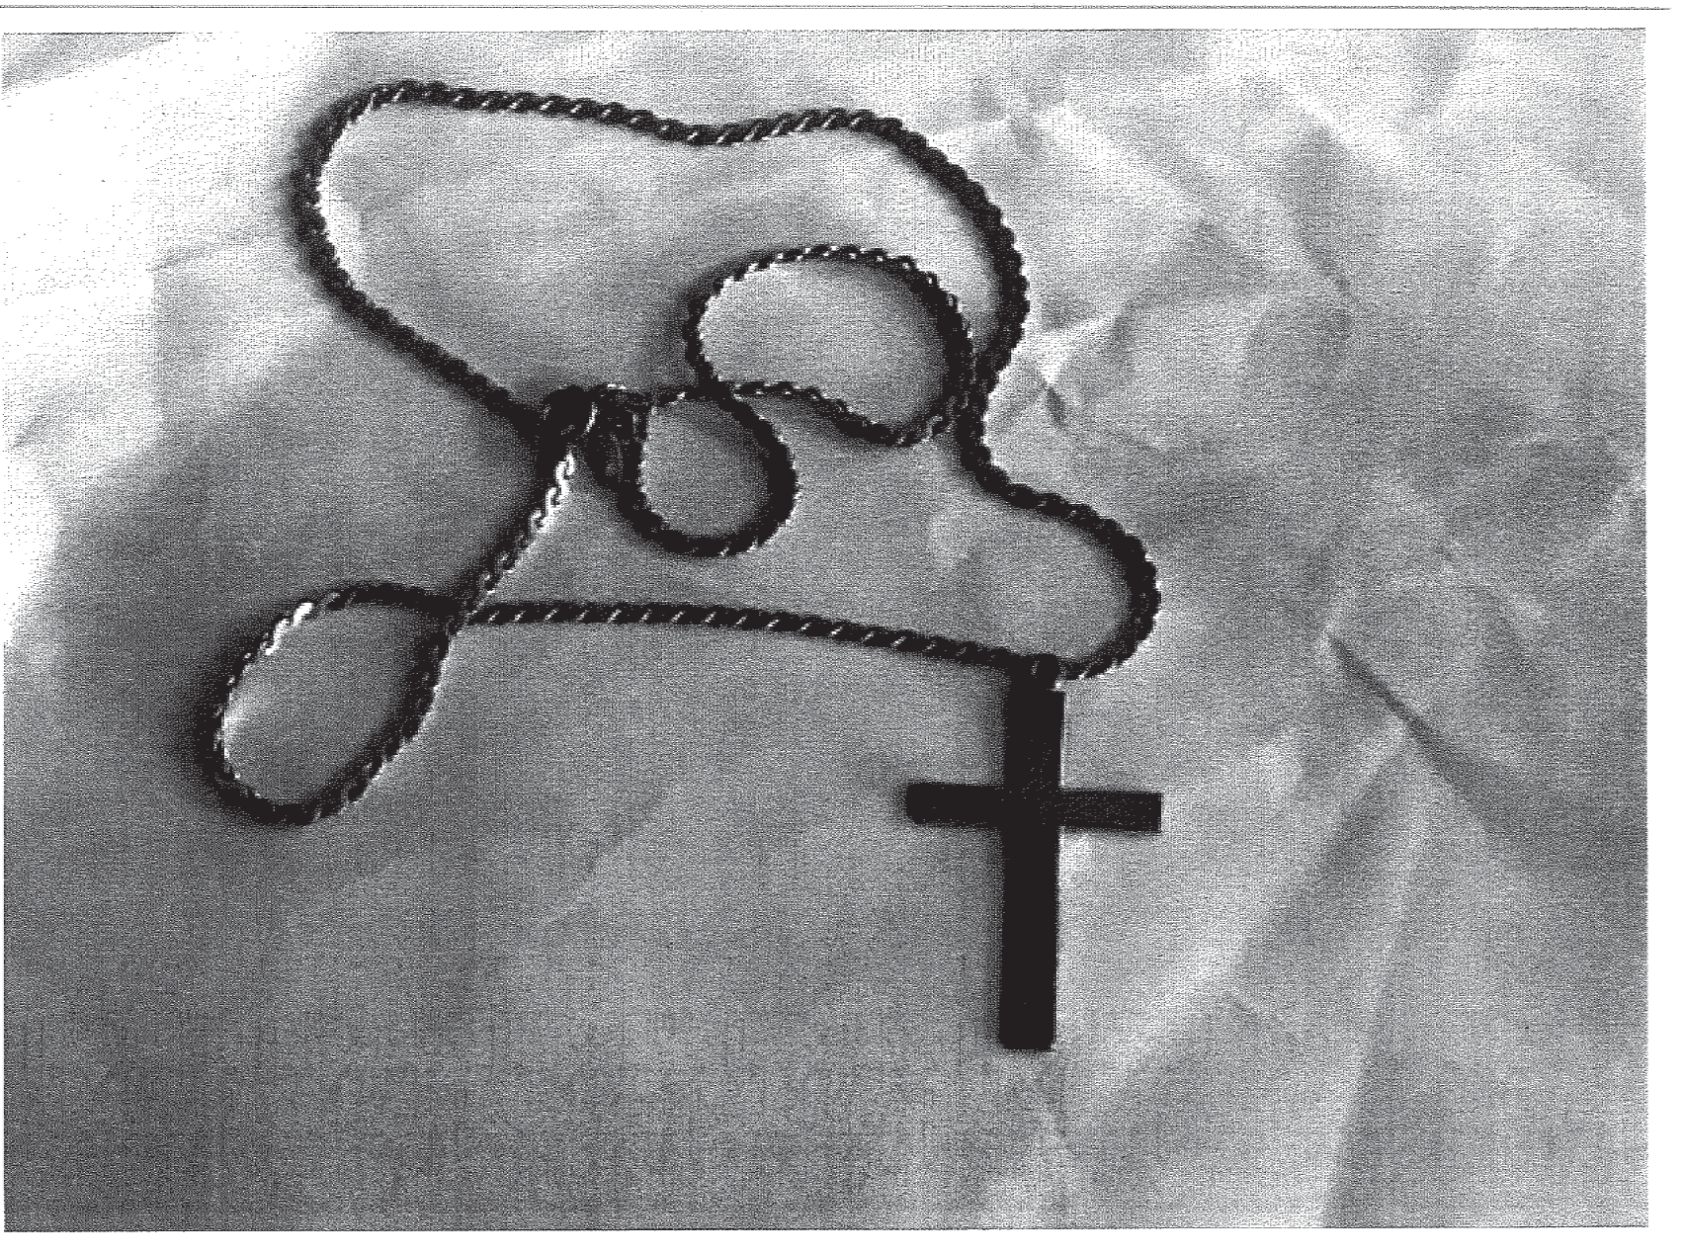 Cross necklaces given to victims by Pittsburgh diocese priests marked them for other predators in the church. (Courtesy Pennsylvania attorney general)